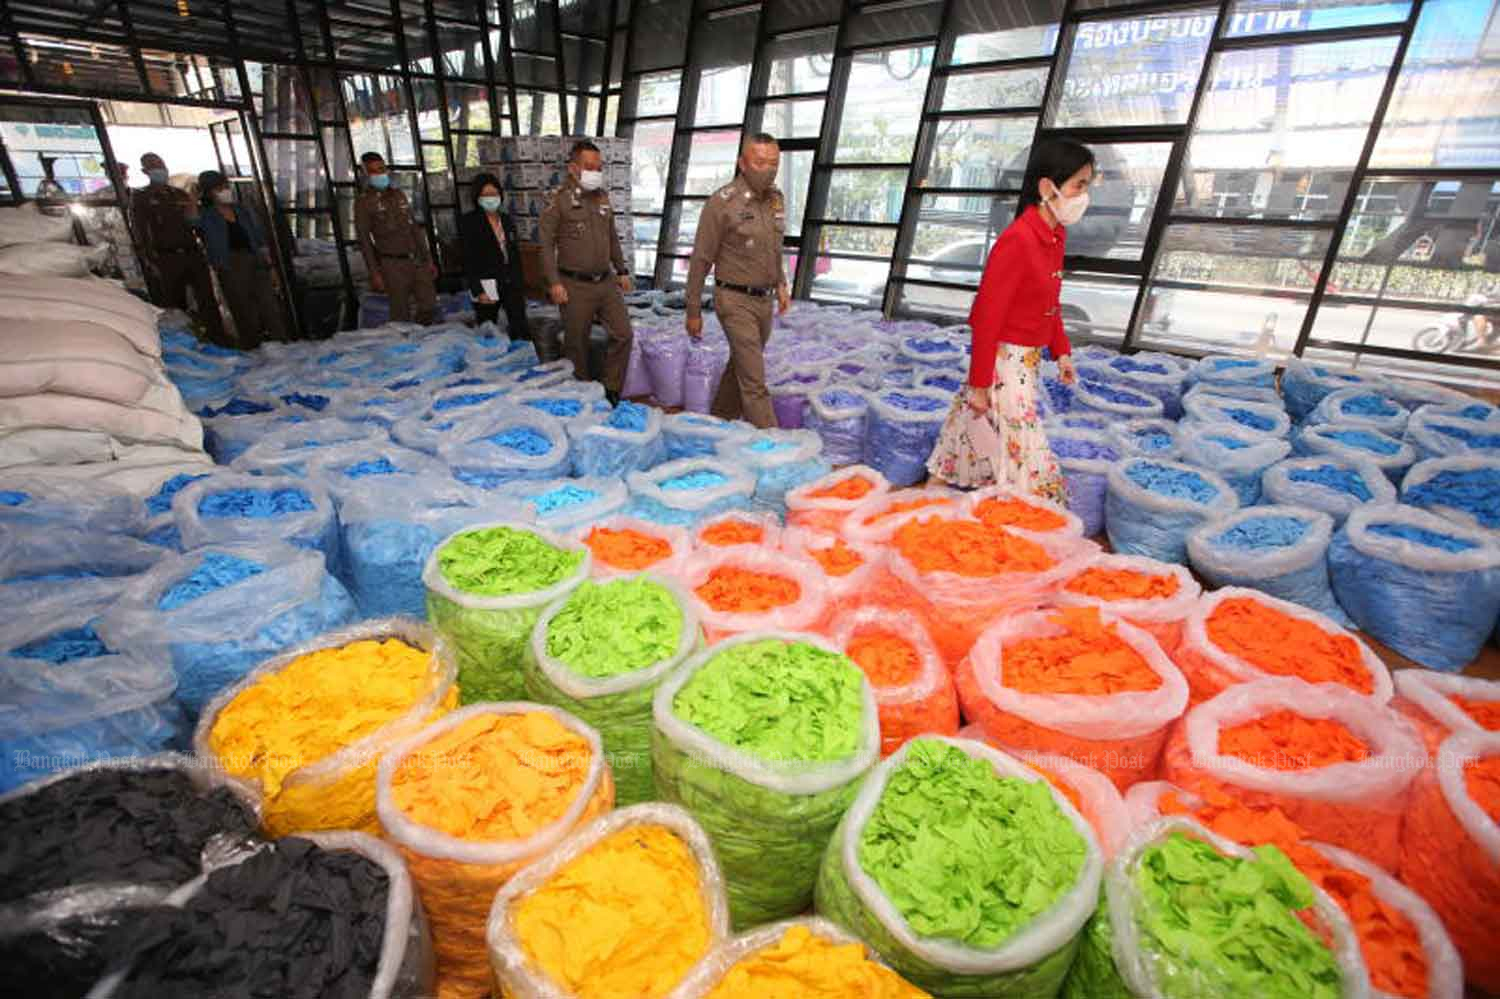 Food and Drug Administration and Royal Thai Police officers raid two warehouses in Nong Khaem district, Bangkok, on Wednesday after hearing they were being used to store used rubber gloves amid the coronavirus pandemic. Officers found 200 million baht worth of used gloves - some of which had already been washed and were ready to be resold - in the raid. An investigation is underway to find out who imported the gloves. (Photo: Pattarapong Chatpattarasill)